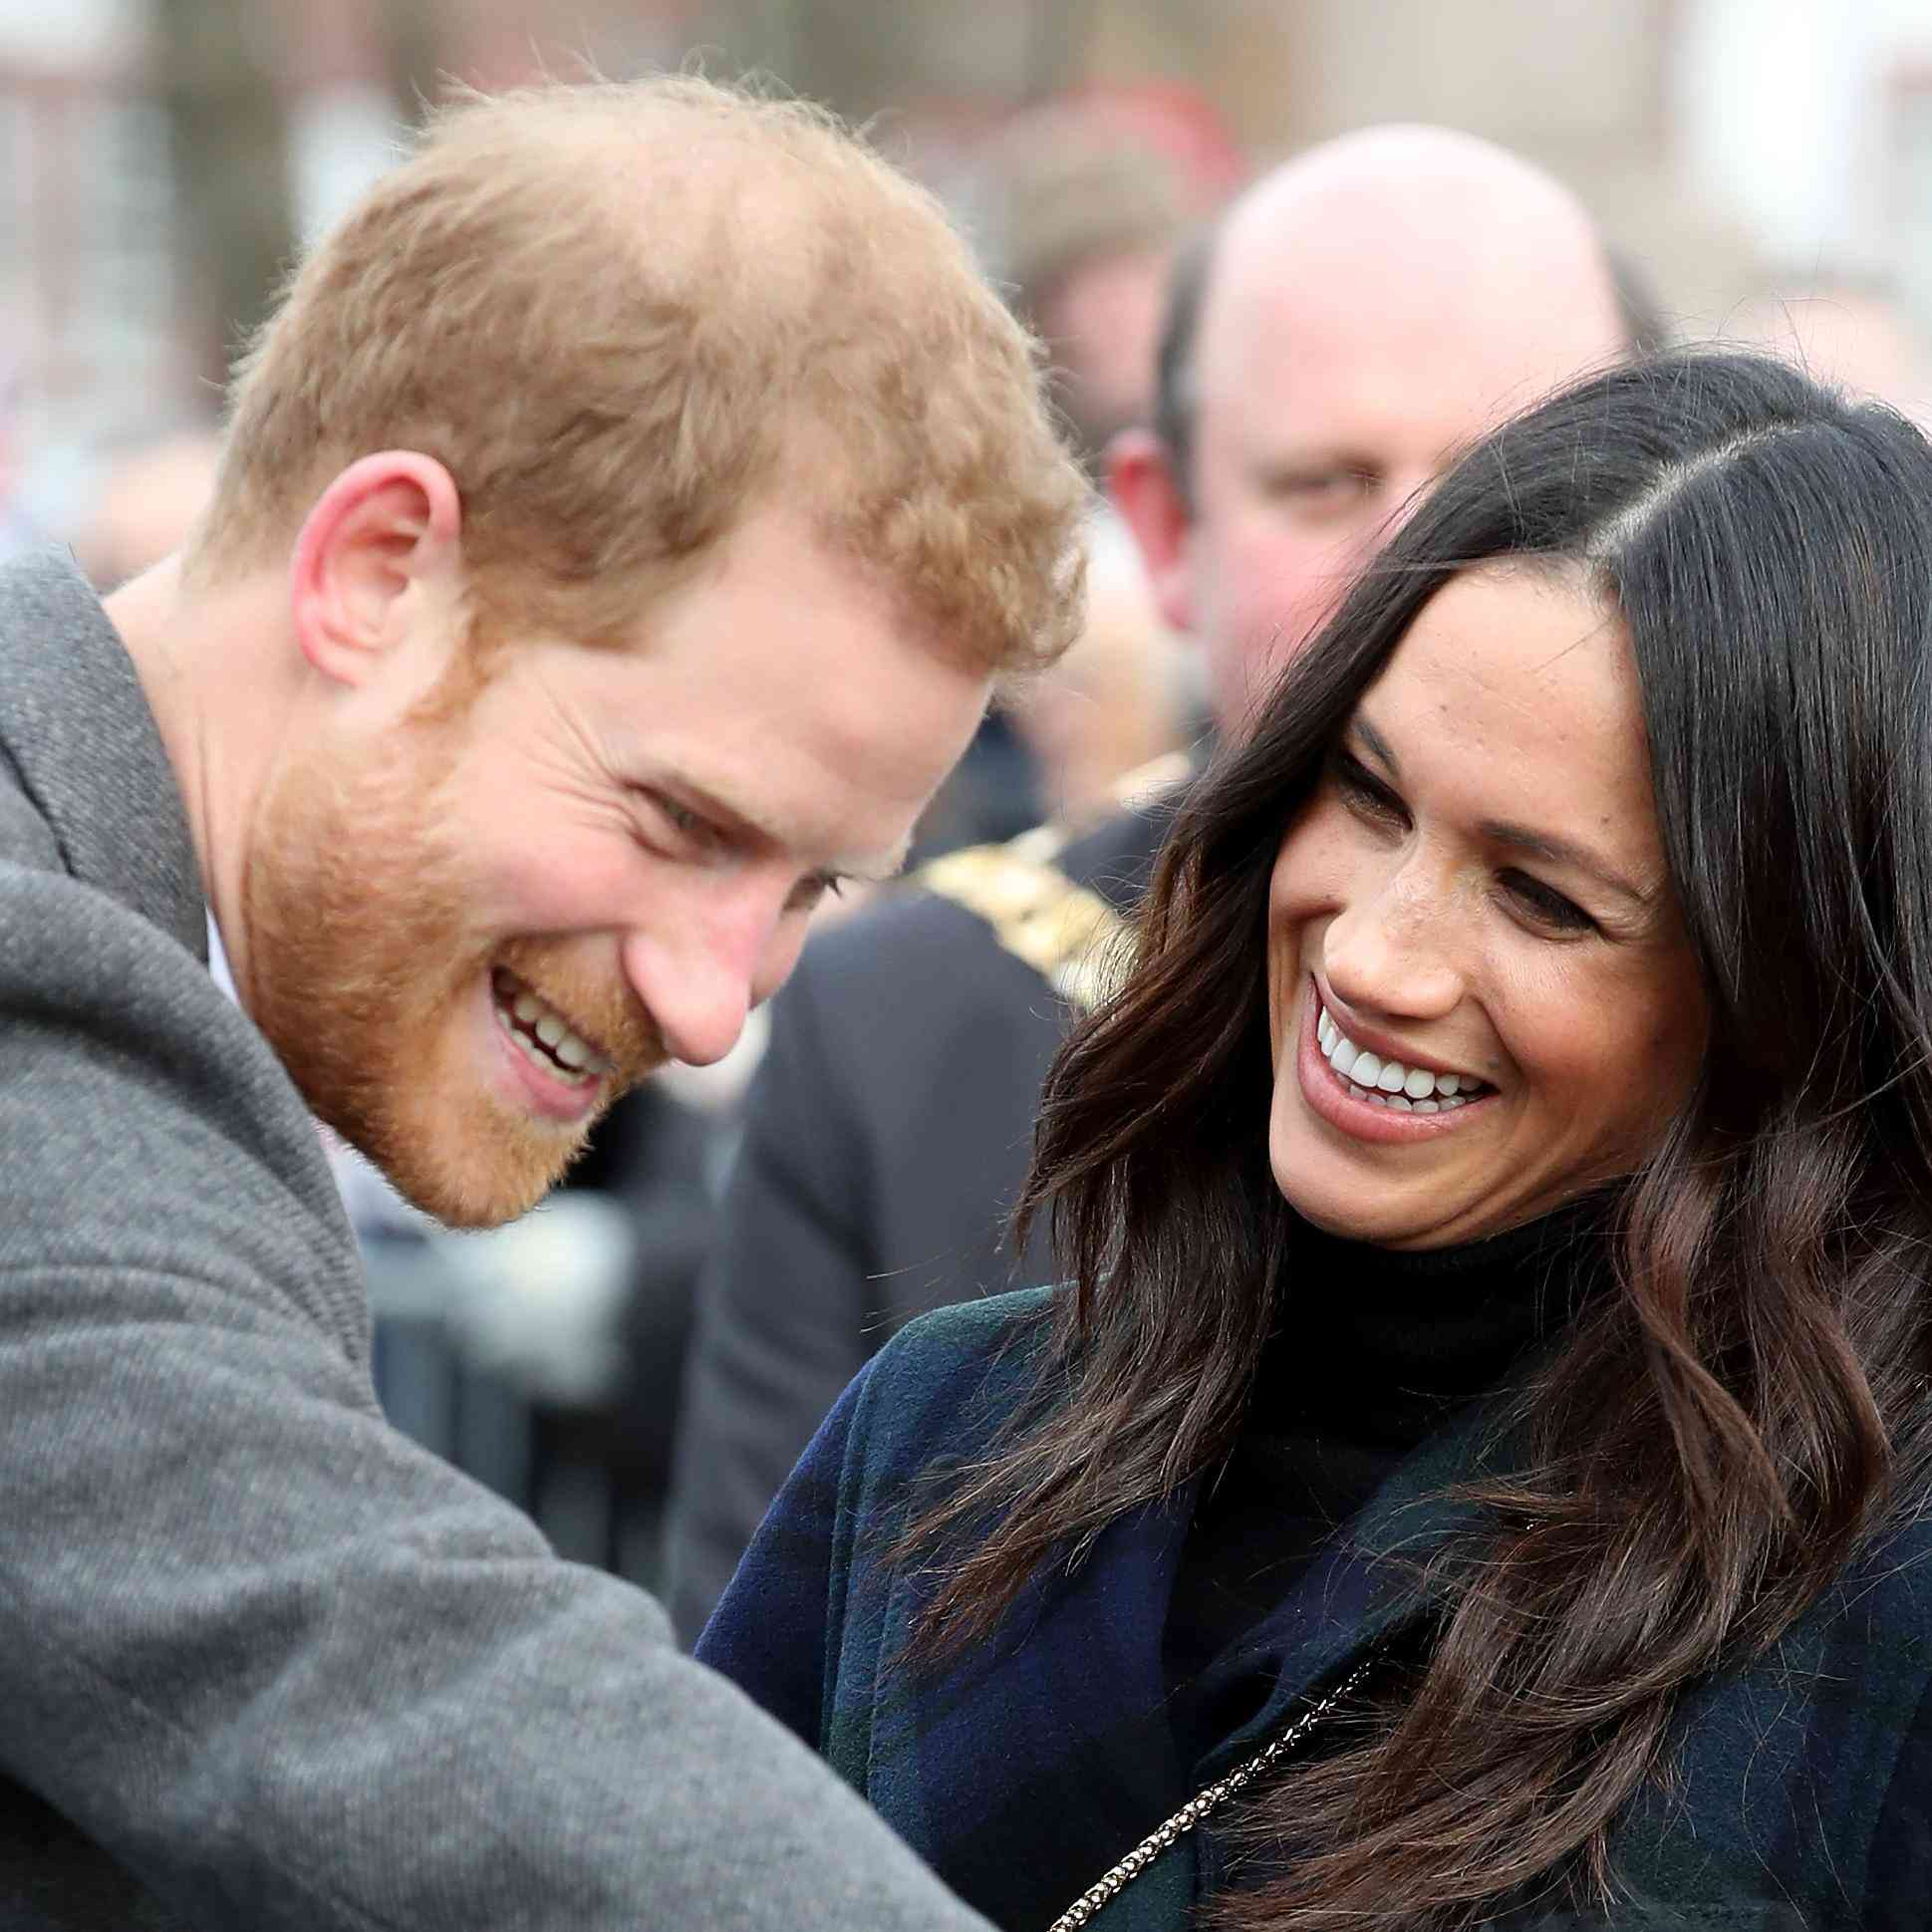 Watch The Royal Wedding.Calling All Royal Wedding Fans You Can Now Watch The Ceremony From